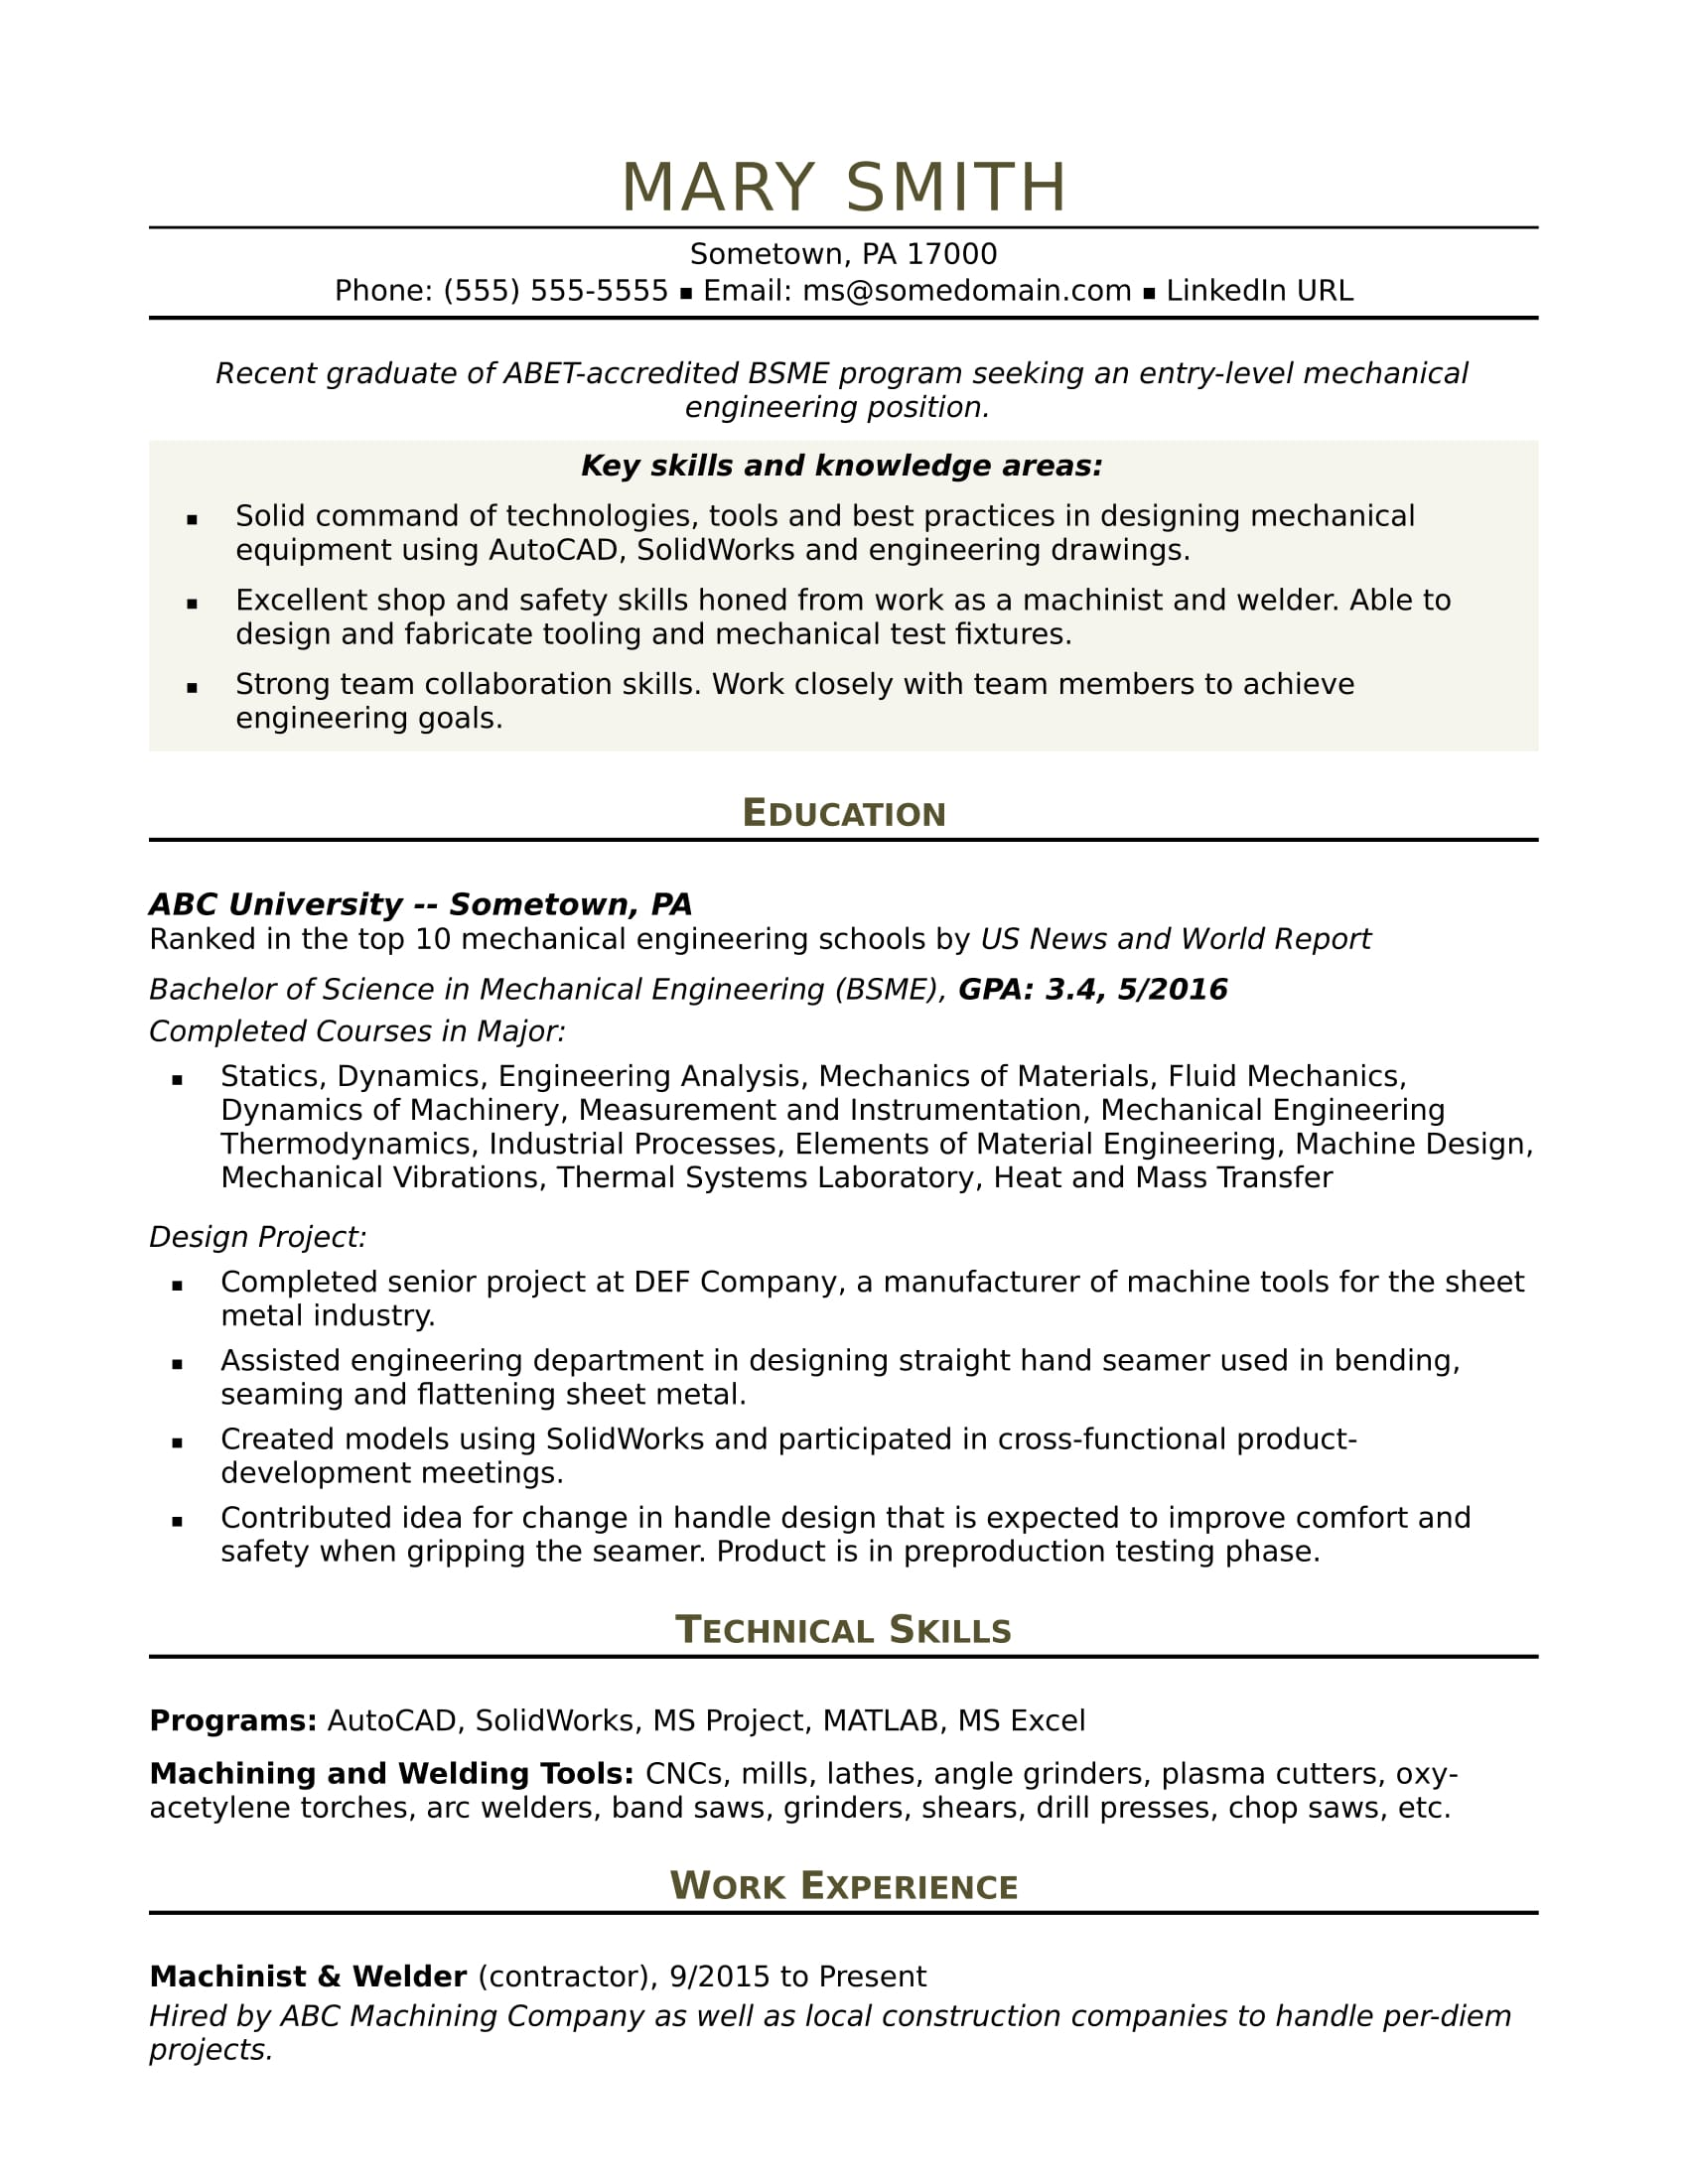 Charming Sample Resume For An Entry Level Mechanical Engineer  Sample Engineer Resume